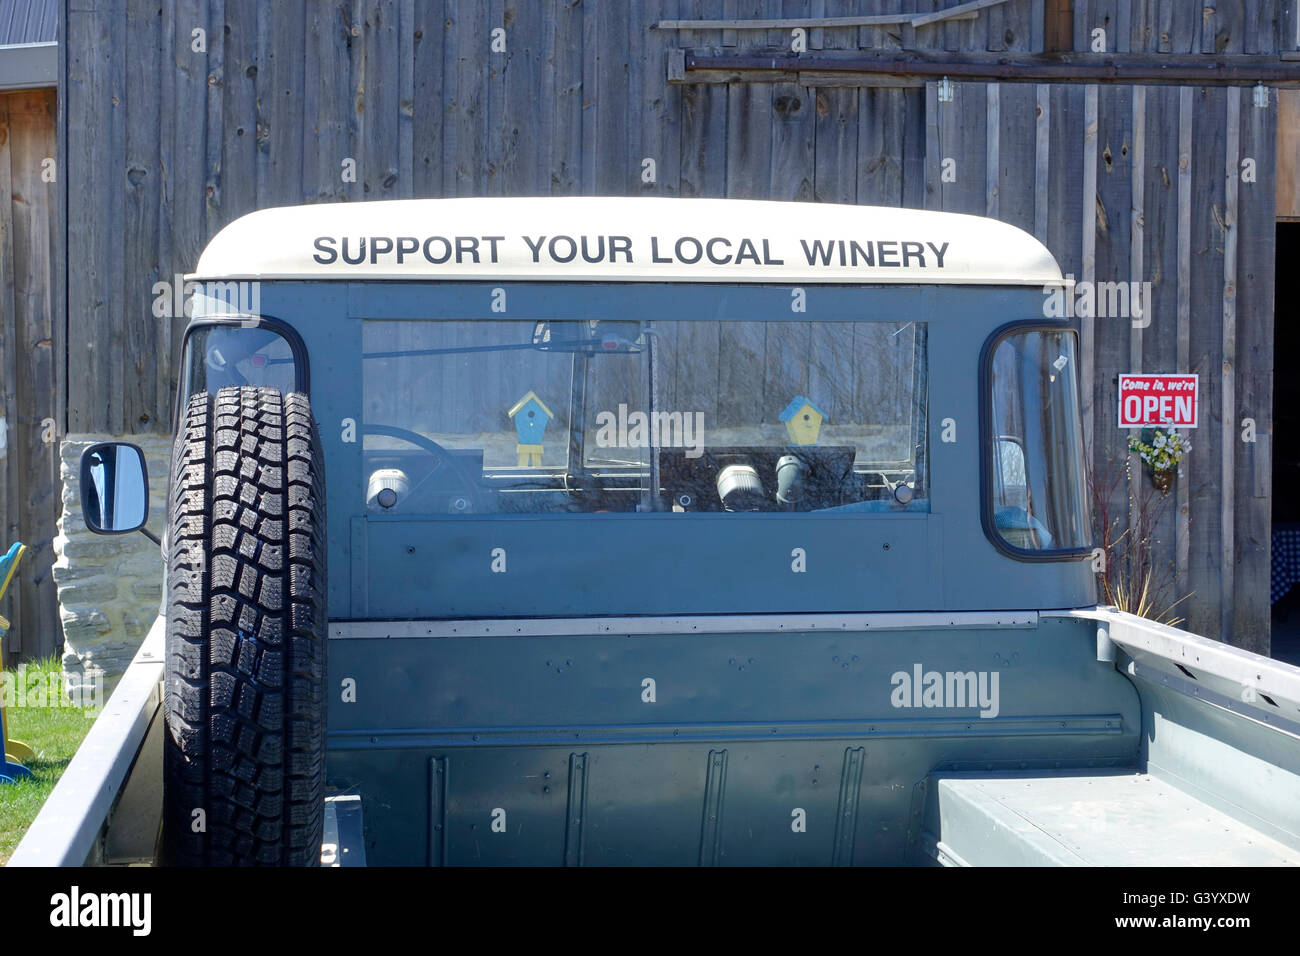 A British Land Rover Pick Up Truck At A Prince Edward County Ontario Winery With A Sign, Support Your Local Winery - Stock Image